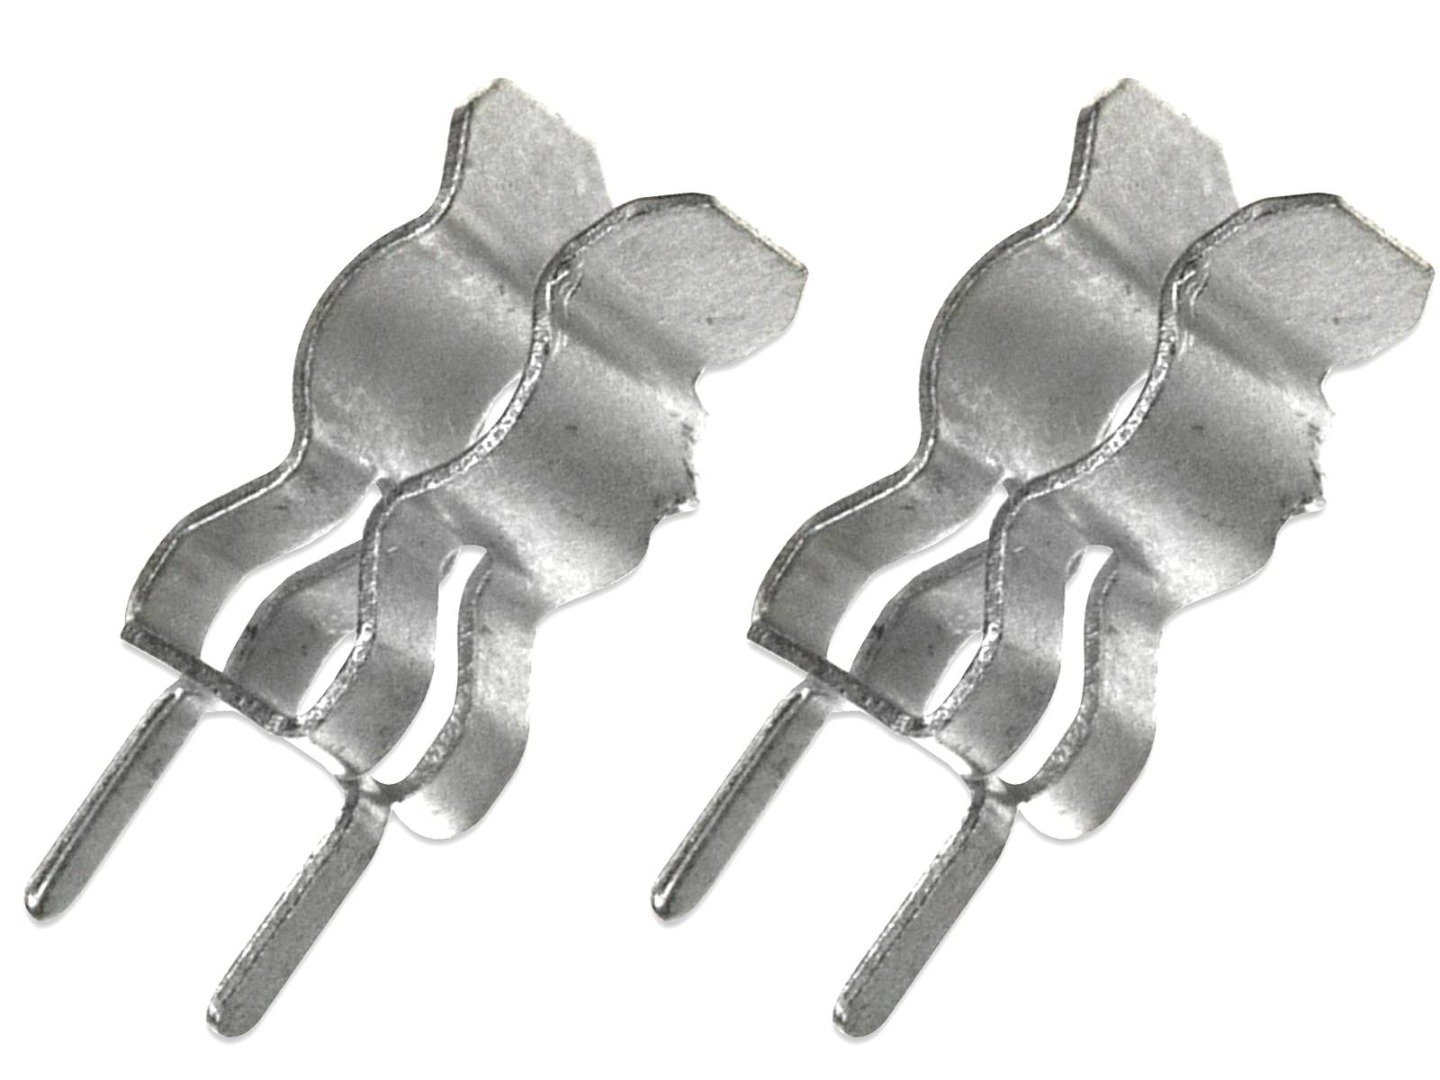 Fuse Clips 5mm (pair) for Glass Fuse 5x15mm, 5x20mm